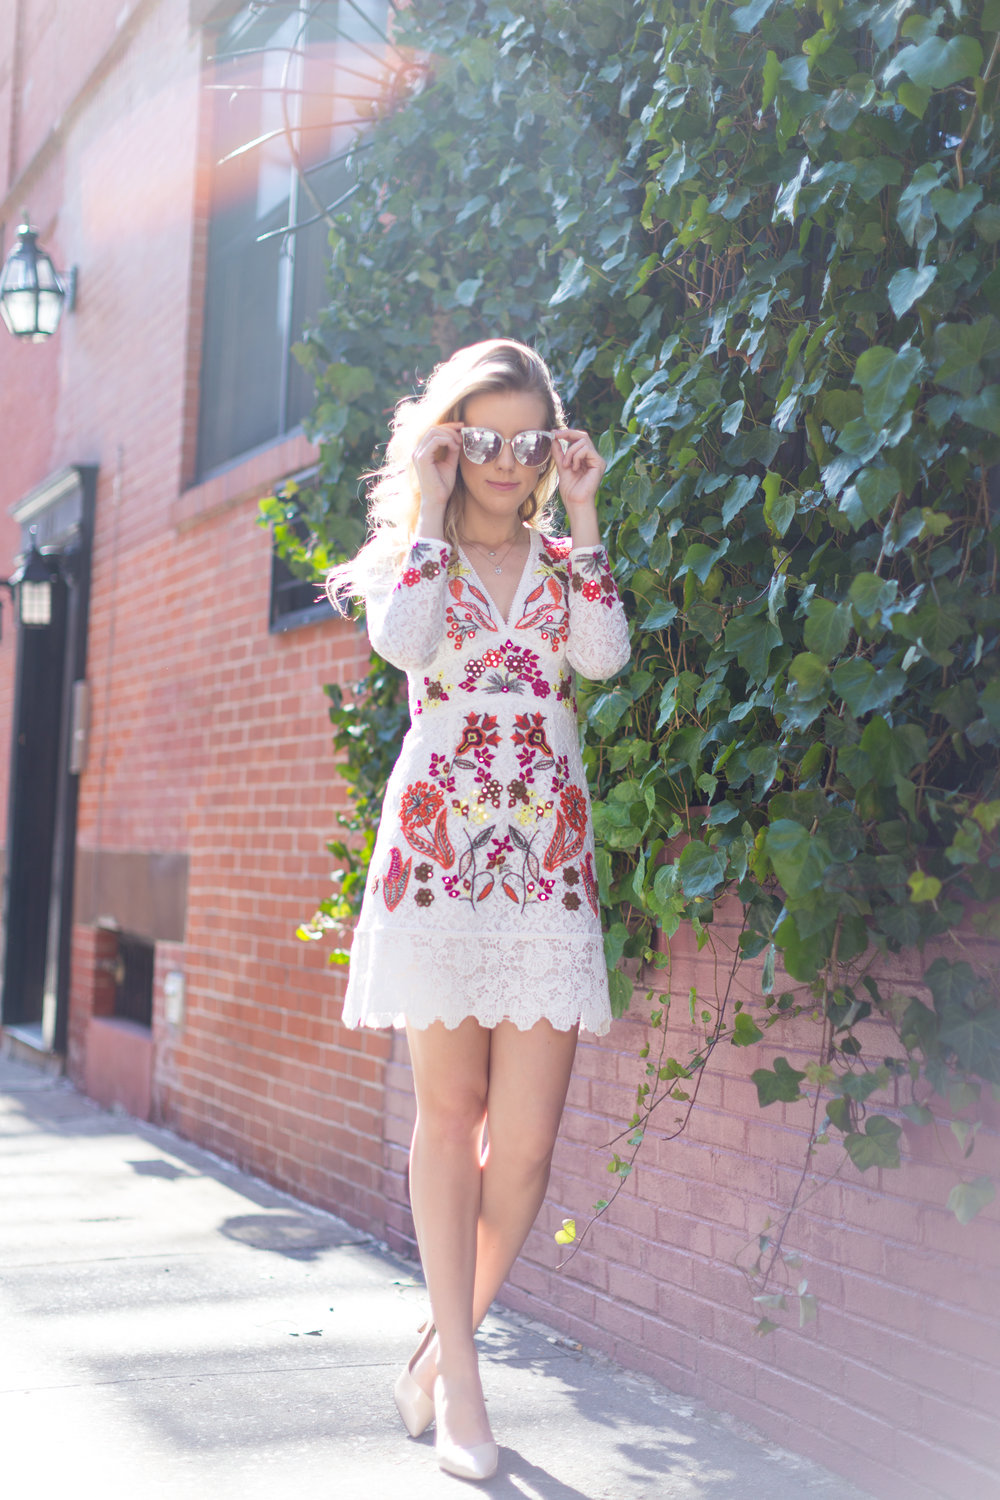 West Village NYC Embroidered Lace Outfit-19.jpg